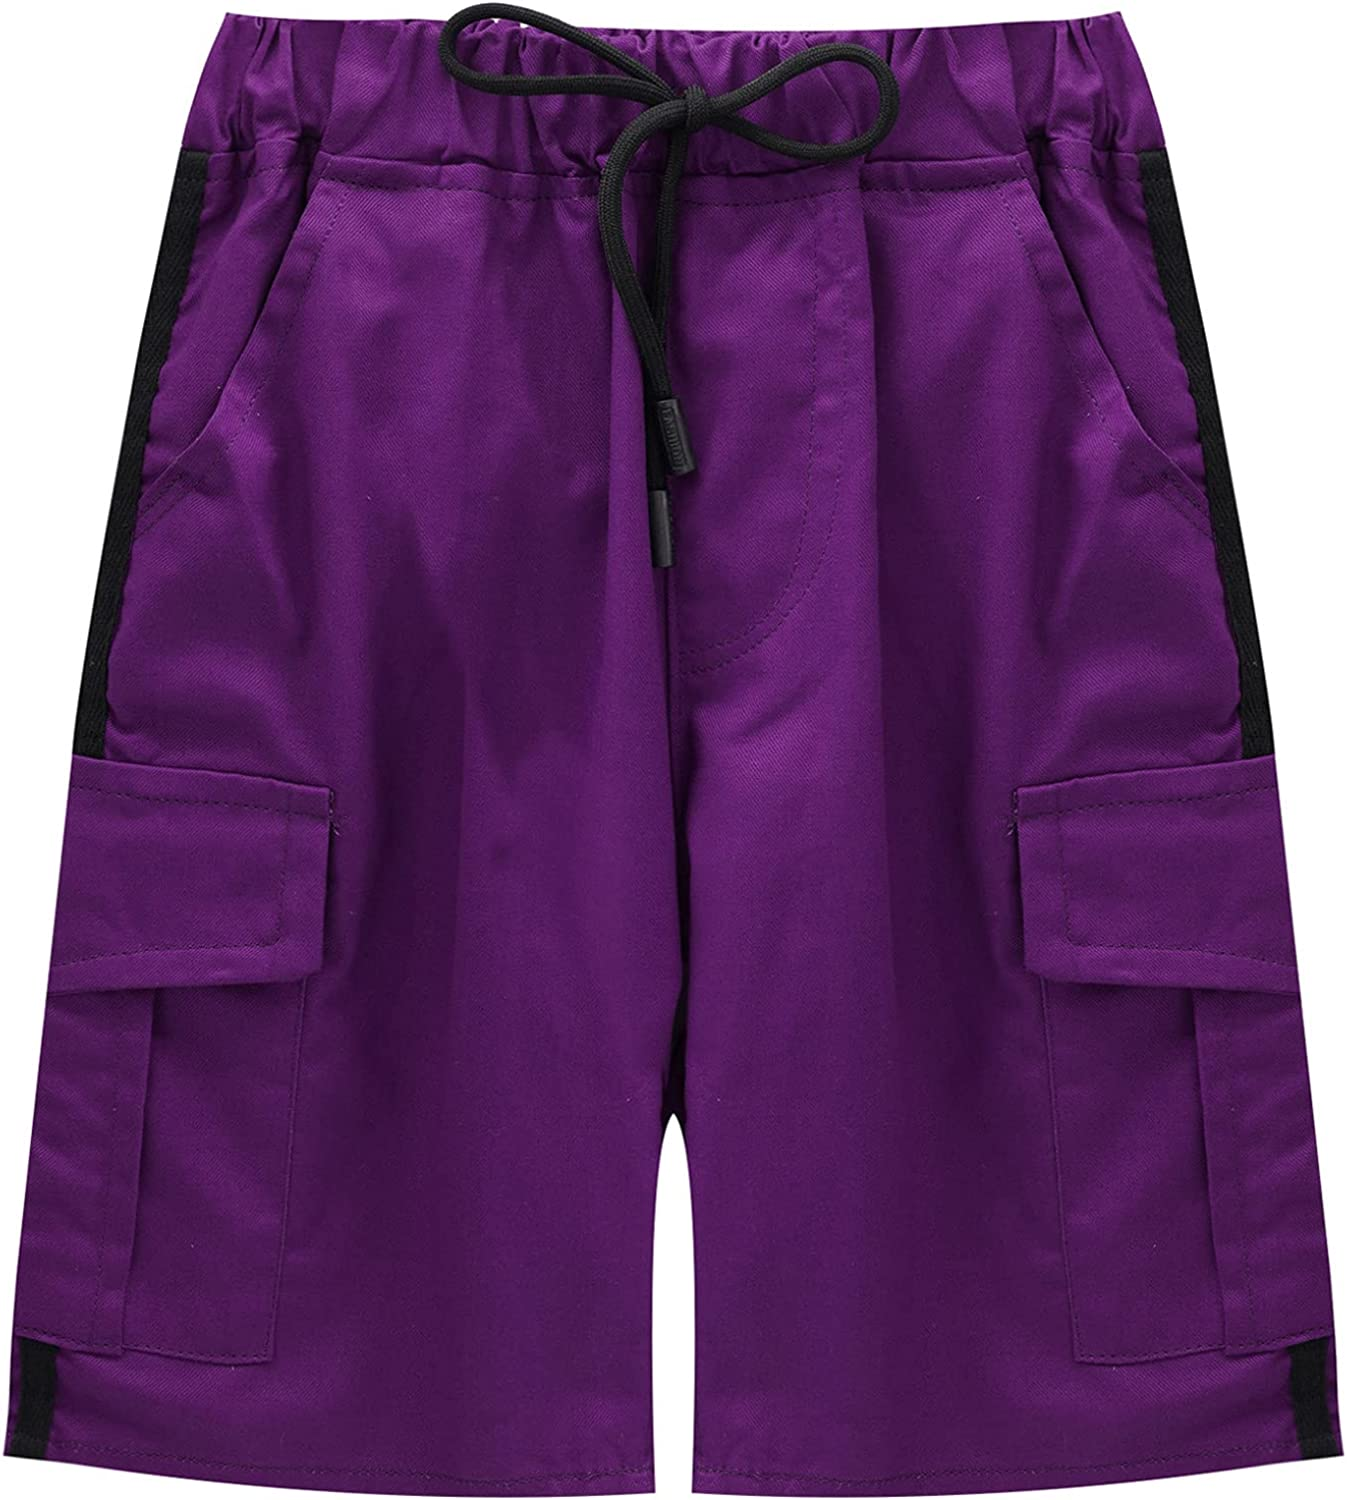 Freebily Boys' Stretchy Drawstring Sports Shorts with Pockets Athletic Exercise Gym Shorts for Summer Casual Daily Wear